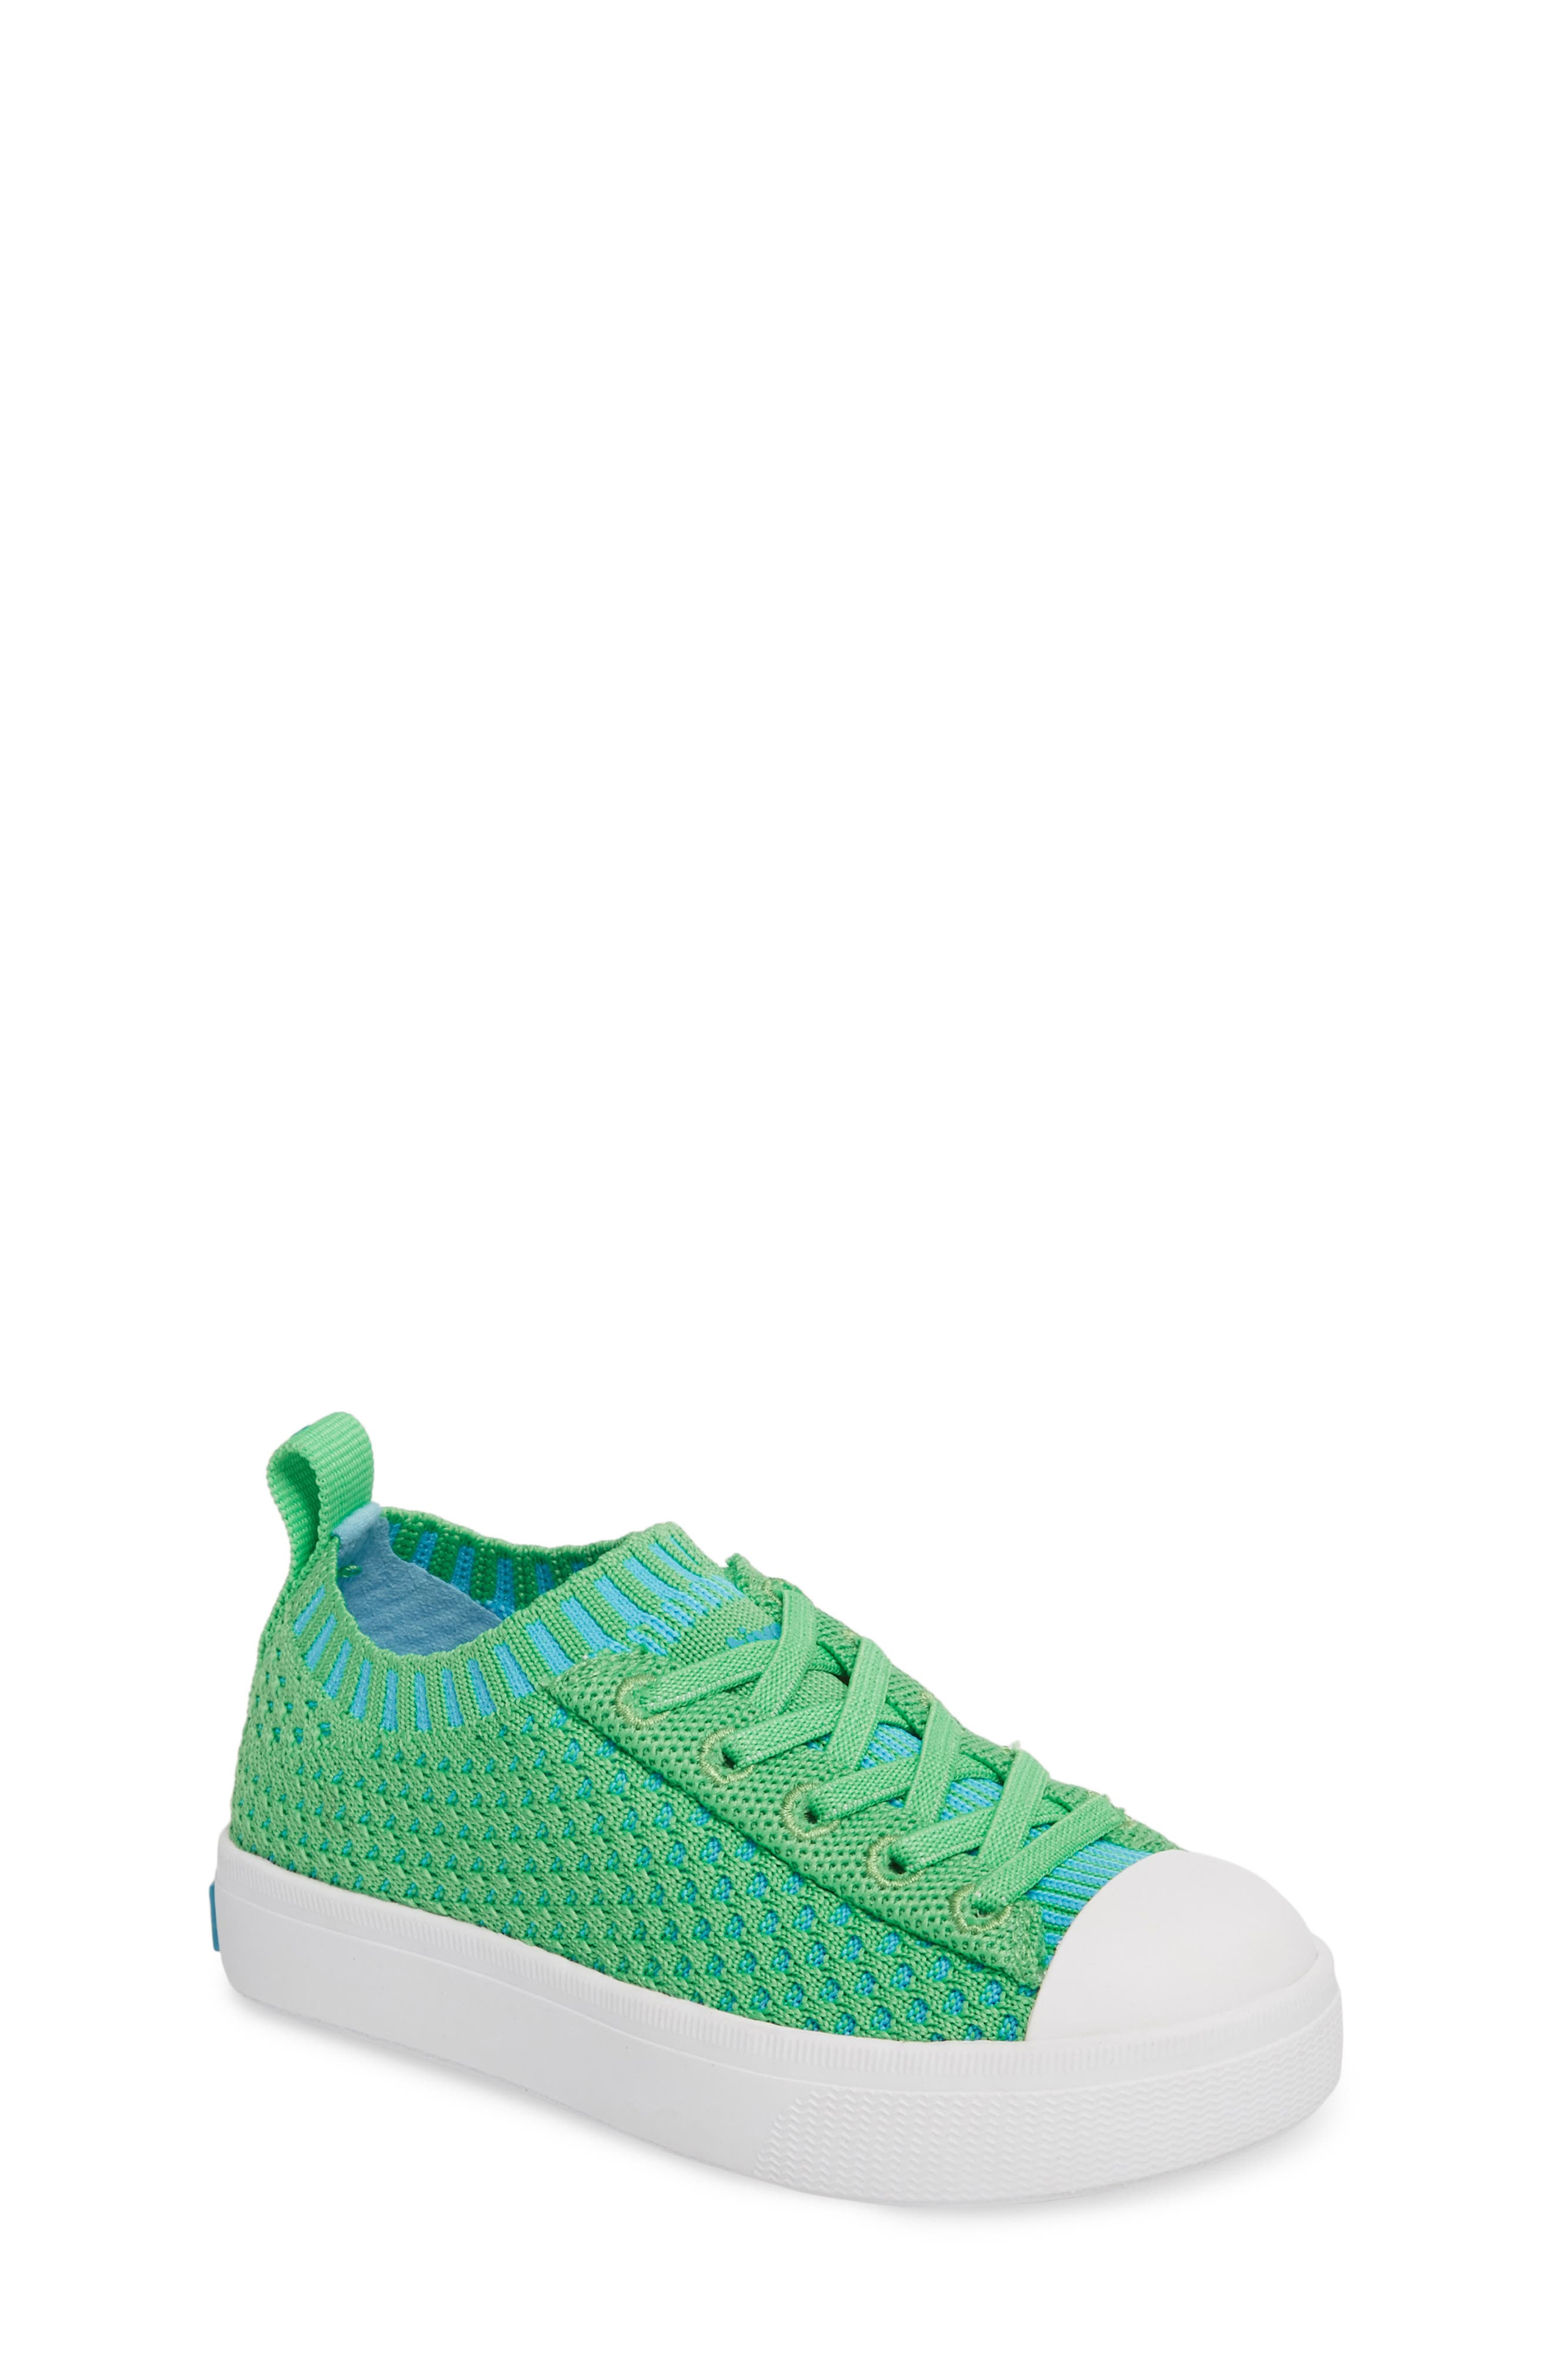 Native Jefferson 2.0 LiteKnit Sneaker,                         Main,                         color, GRASS GREEN/ SHELL WHITE